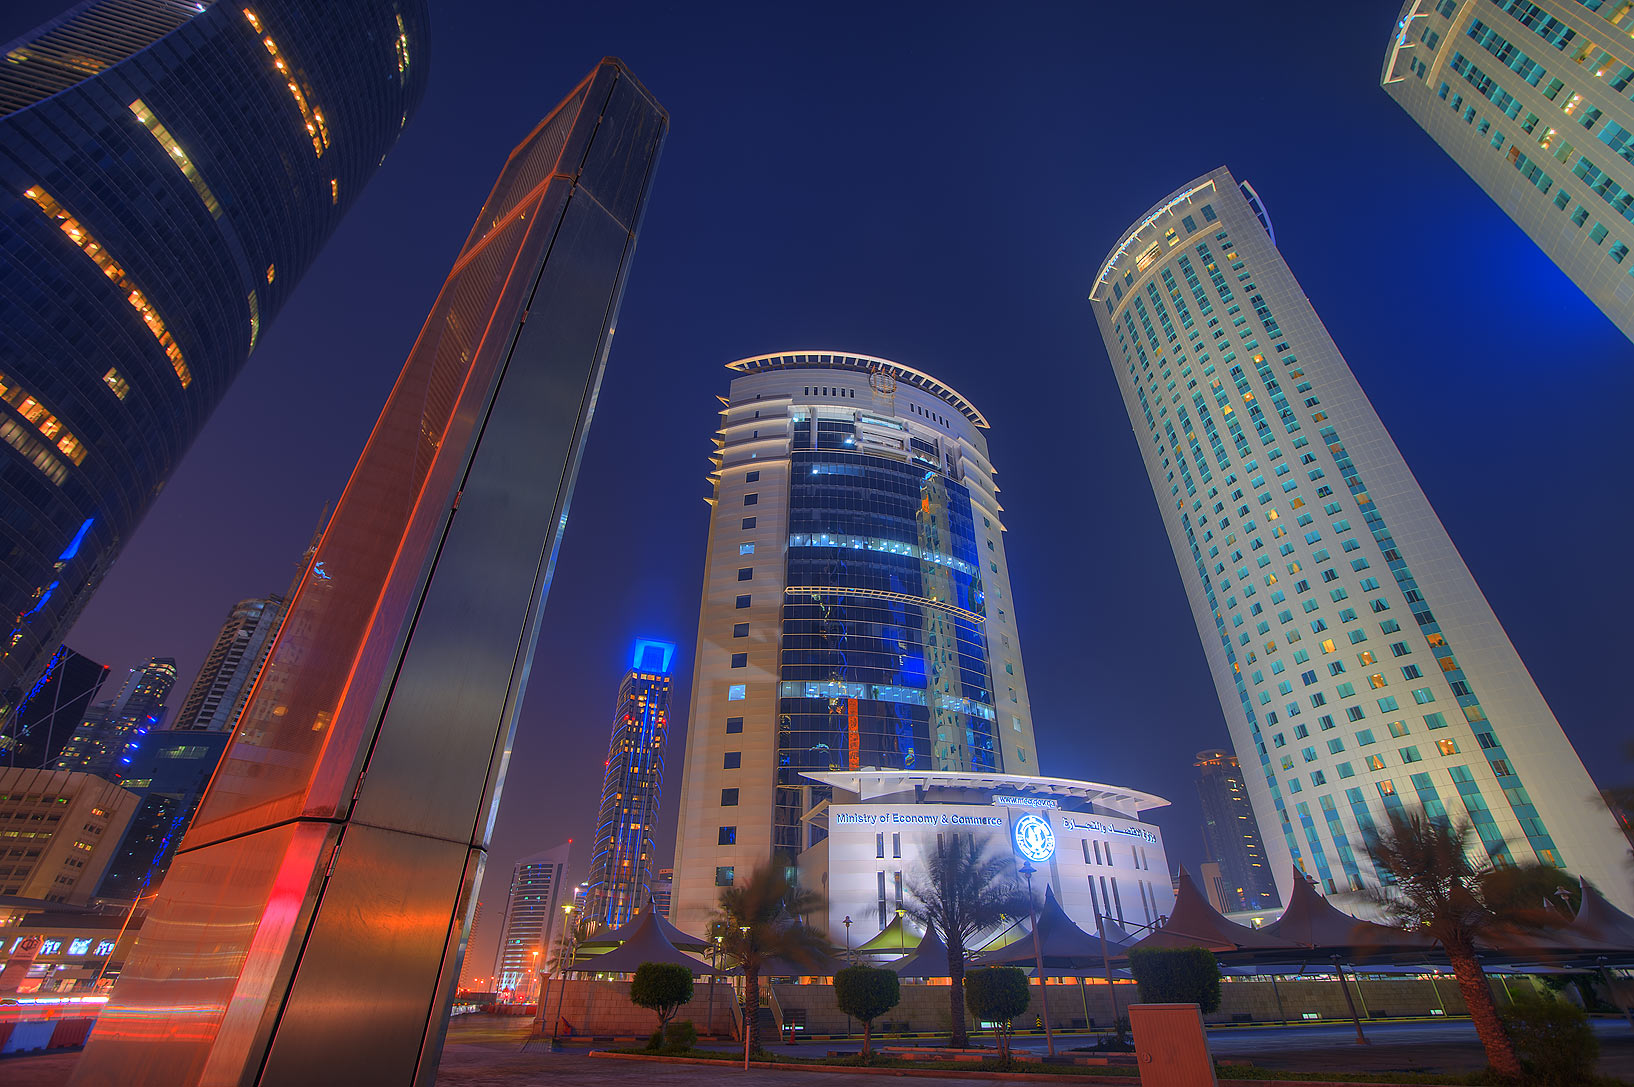 Ministry of Economy and Commerce and Al Fardan Twin Towers in West Bay. Doha, Qatar